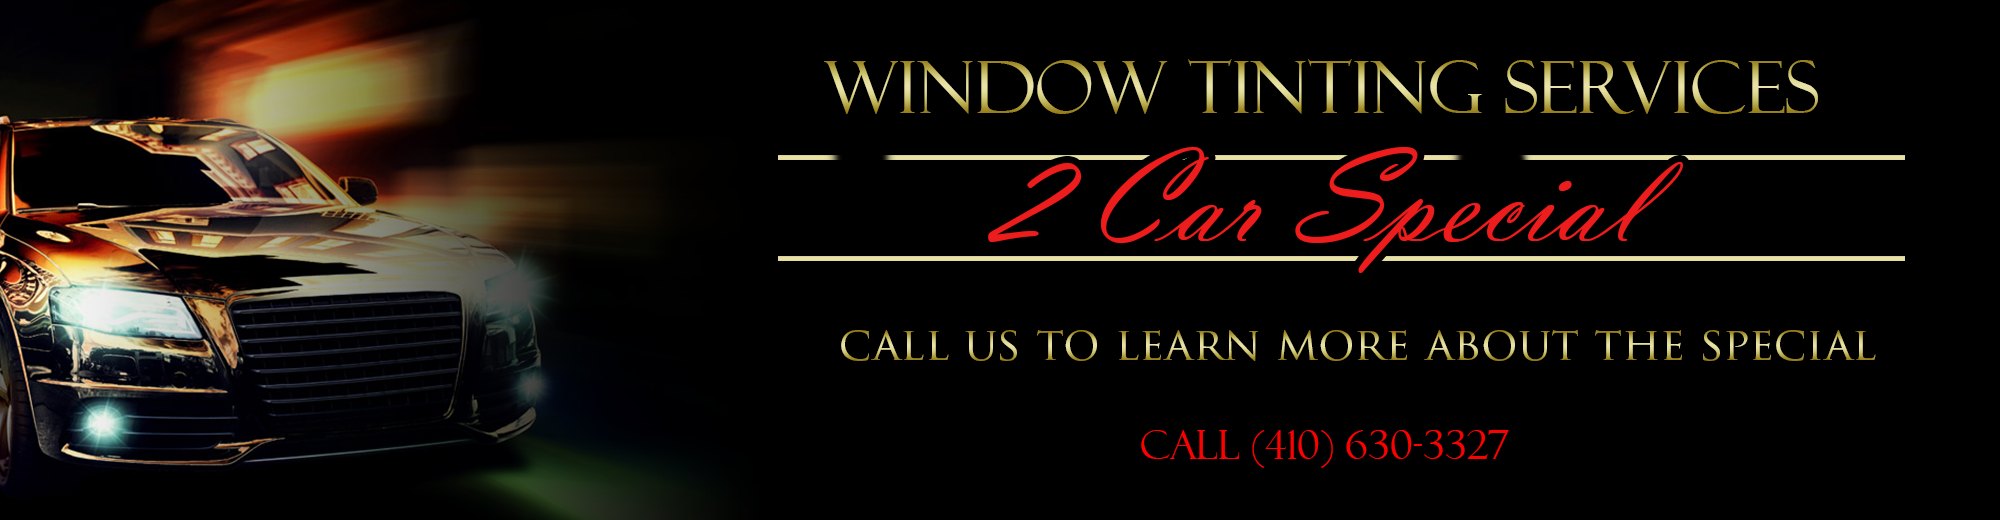 Window Tinting Services